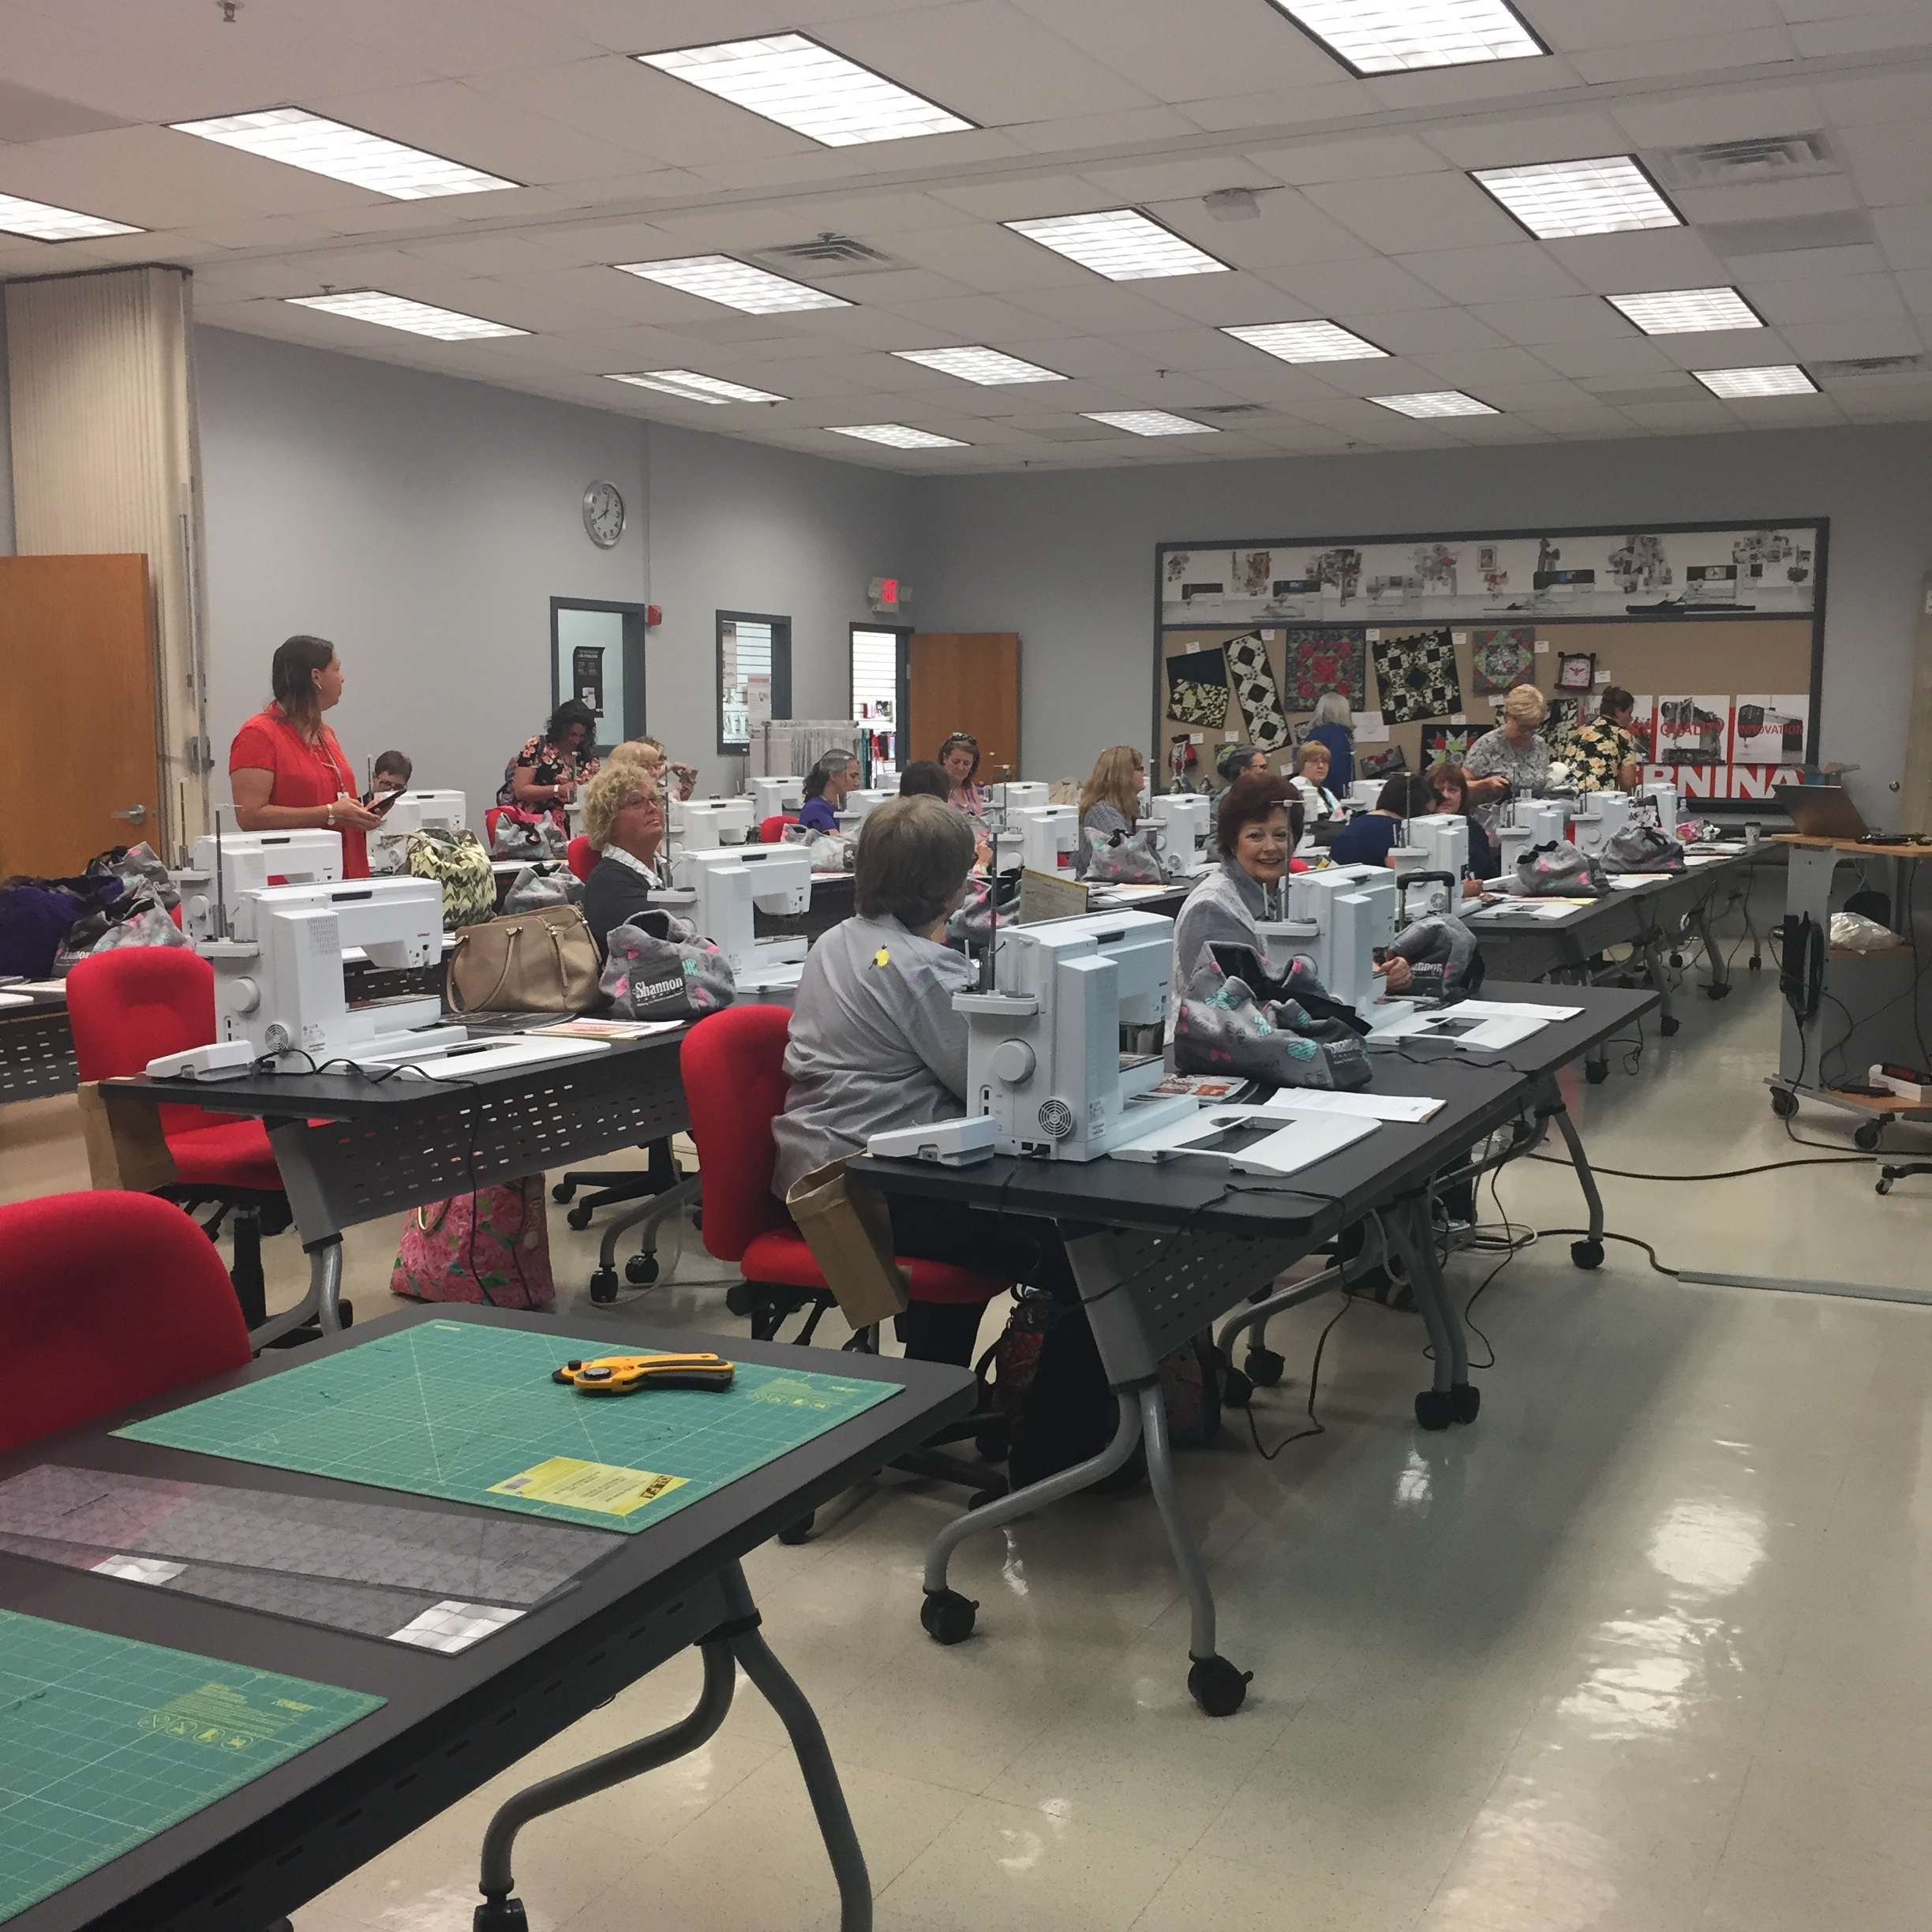 The  Bernina Center educational room